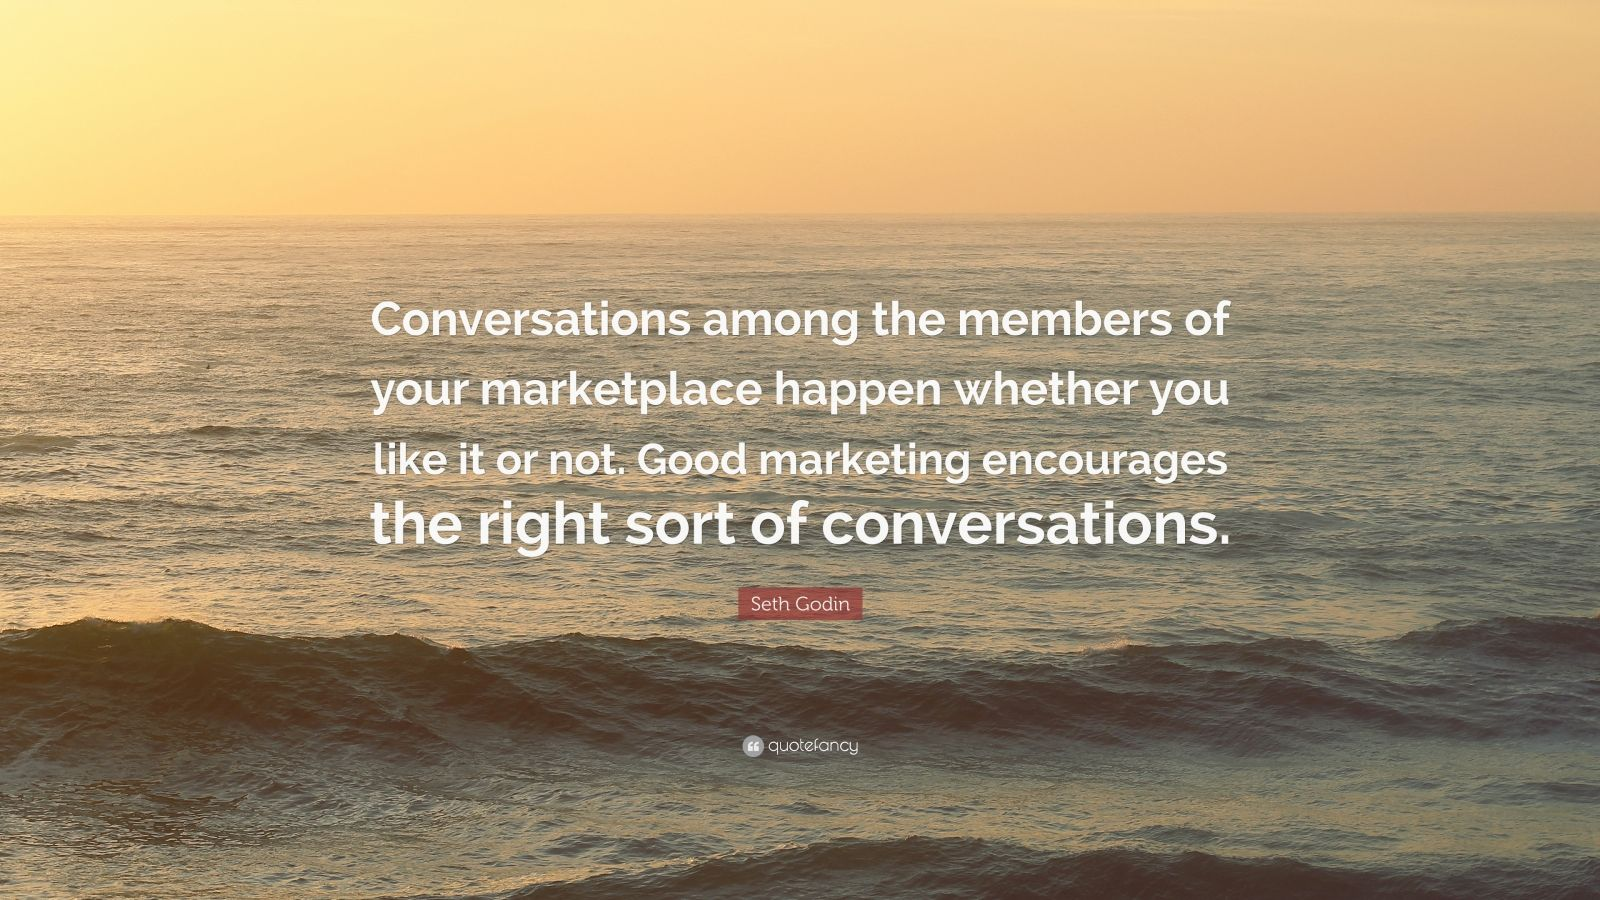 """Seth Godin Quote: """"Conversations among the members of your marketplace happen whether you like it or not. Good marketing encourages the right sort of conversations."""""""